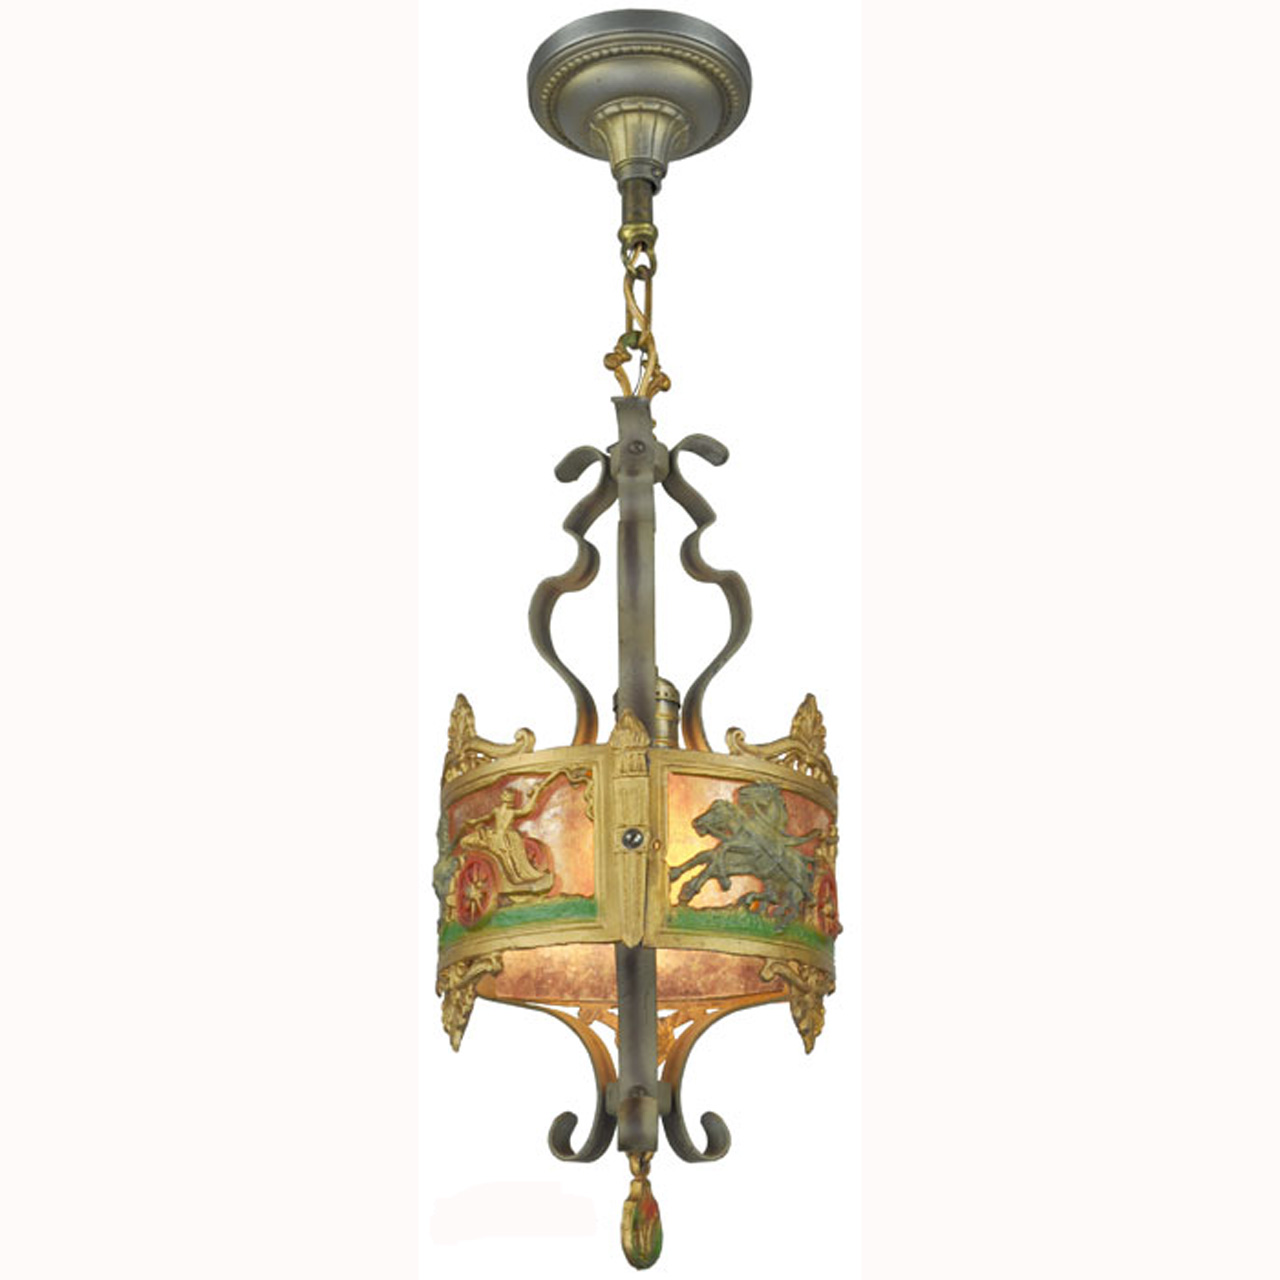 Antique Americana Pendant Ceiling Light With Roman Greek